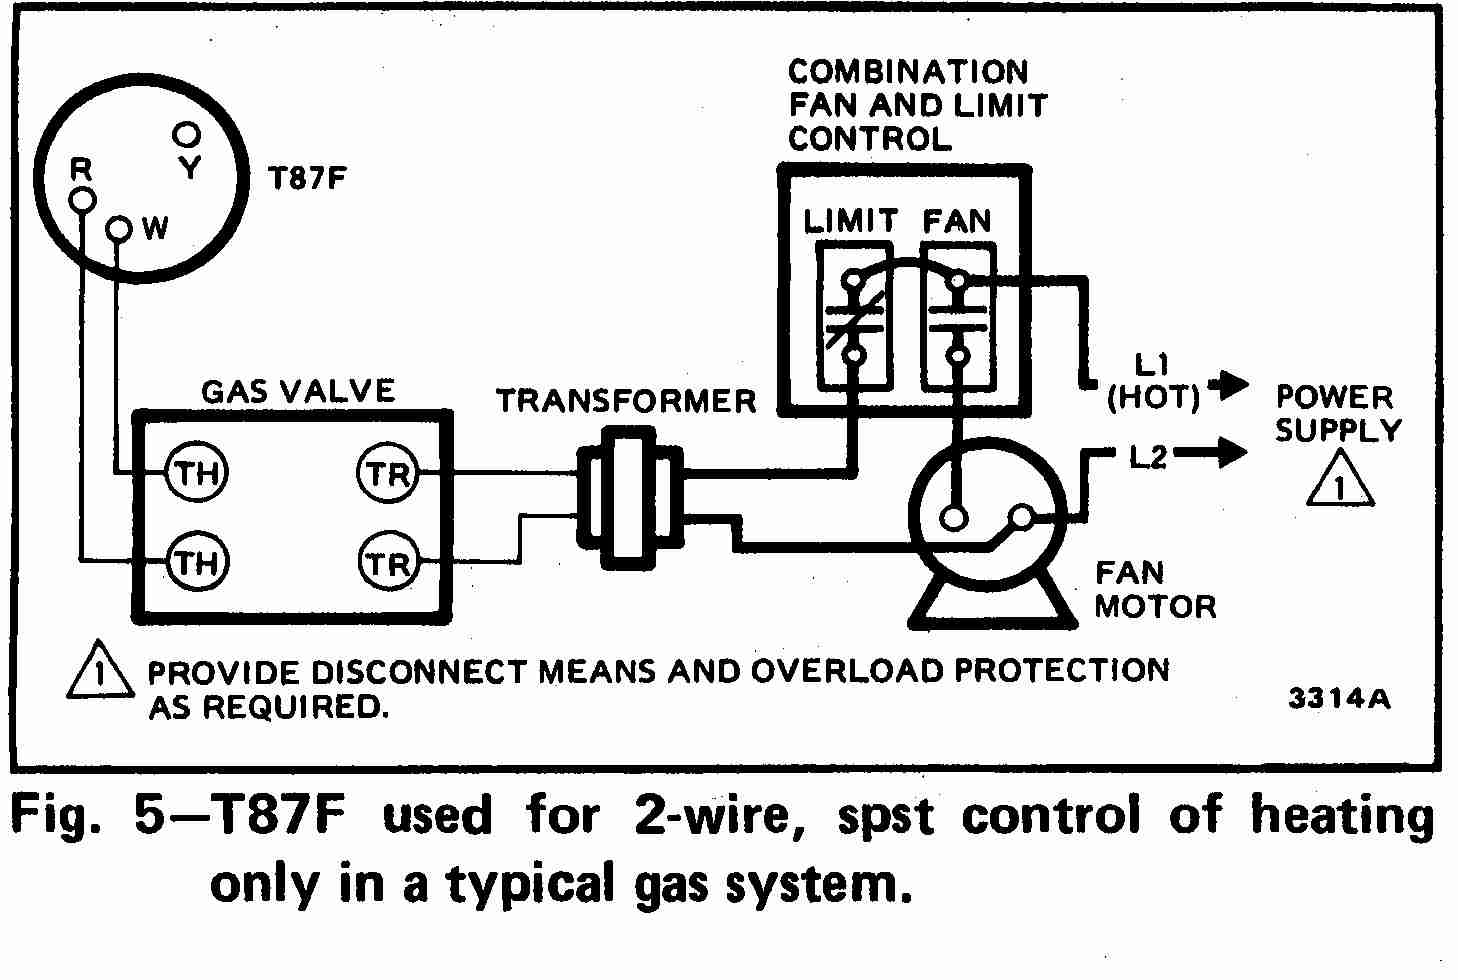 TT_T87F_0002_2Wg_DJF room thermostat wiring diagrams for hvac systems wall heater wiring diagram at alyssarenee.co